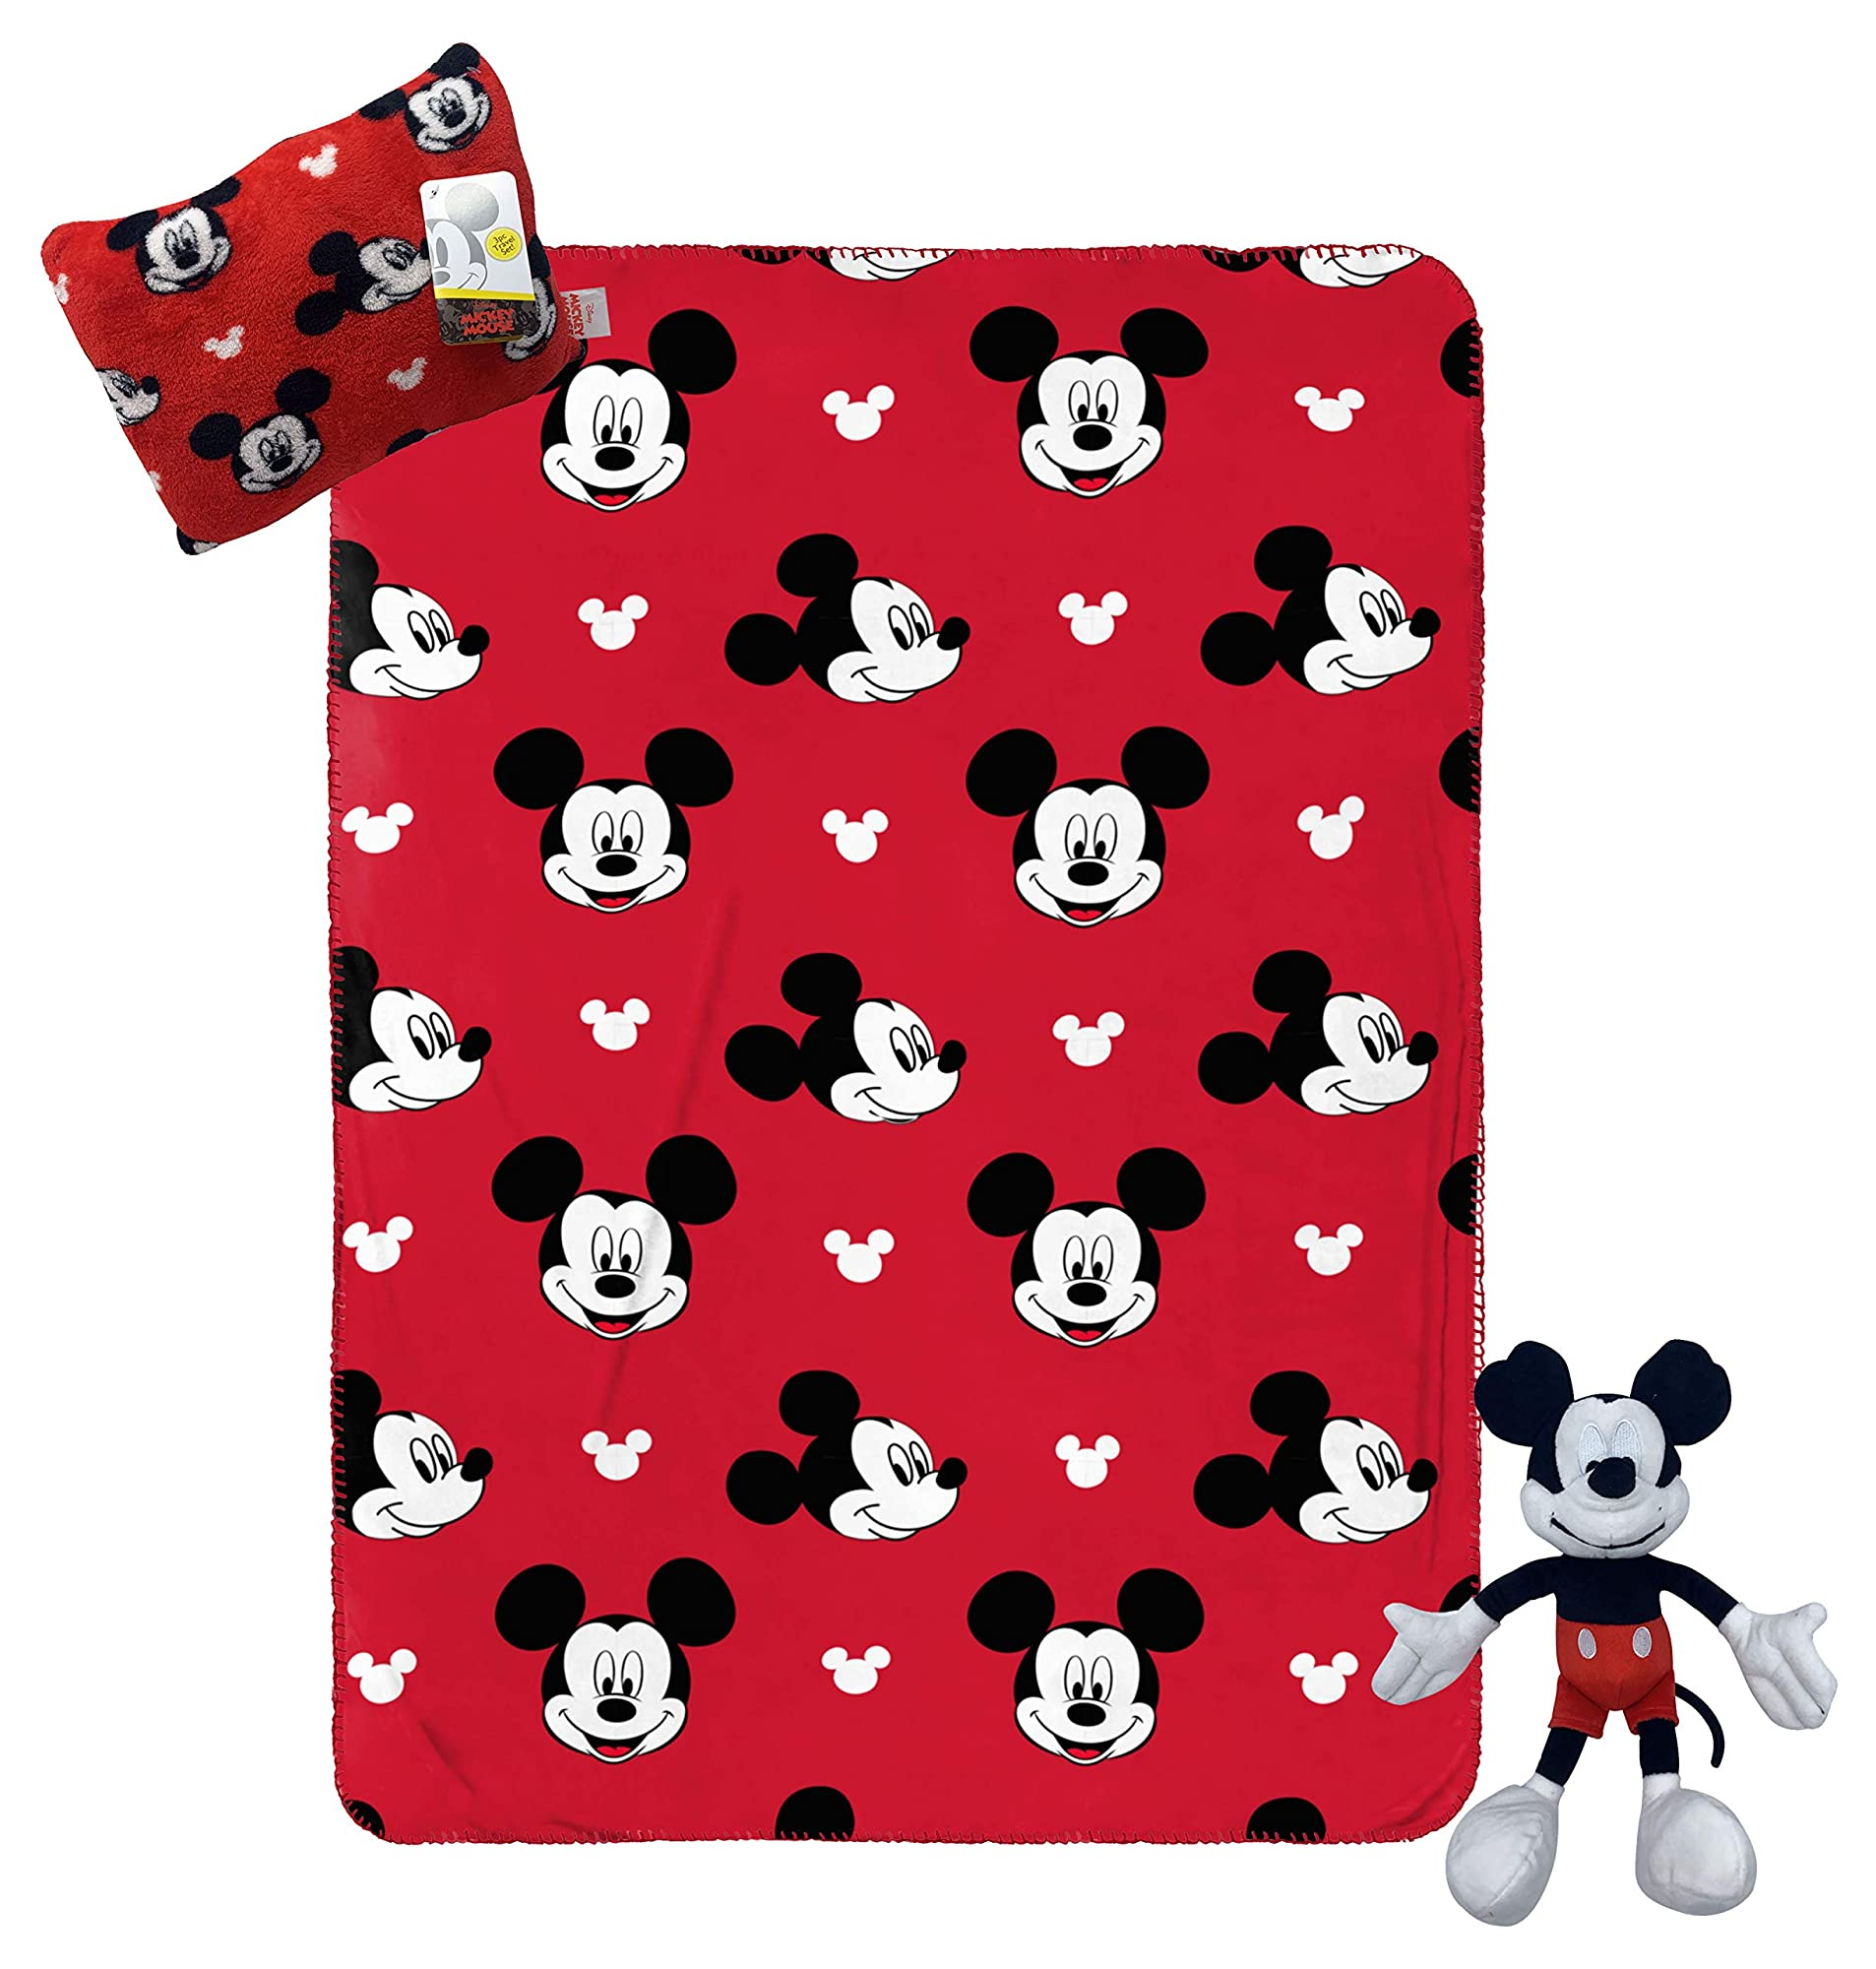 Mickey Mouse Plush Pillow & Blanket Set